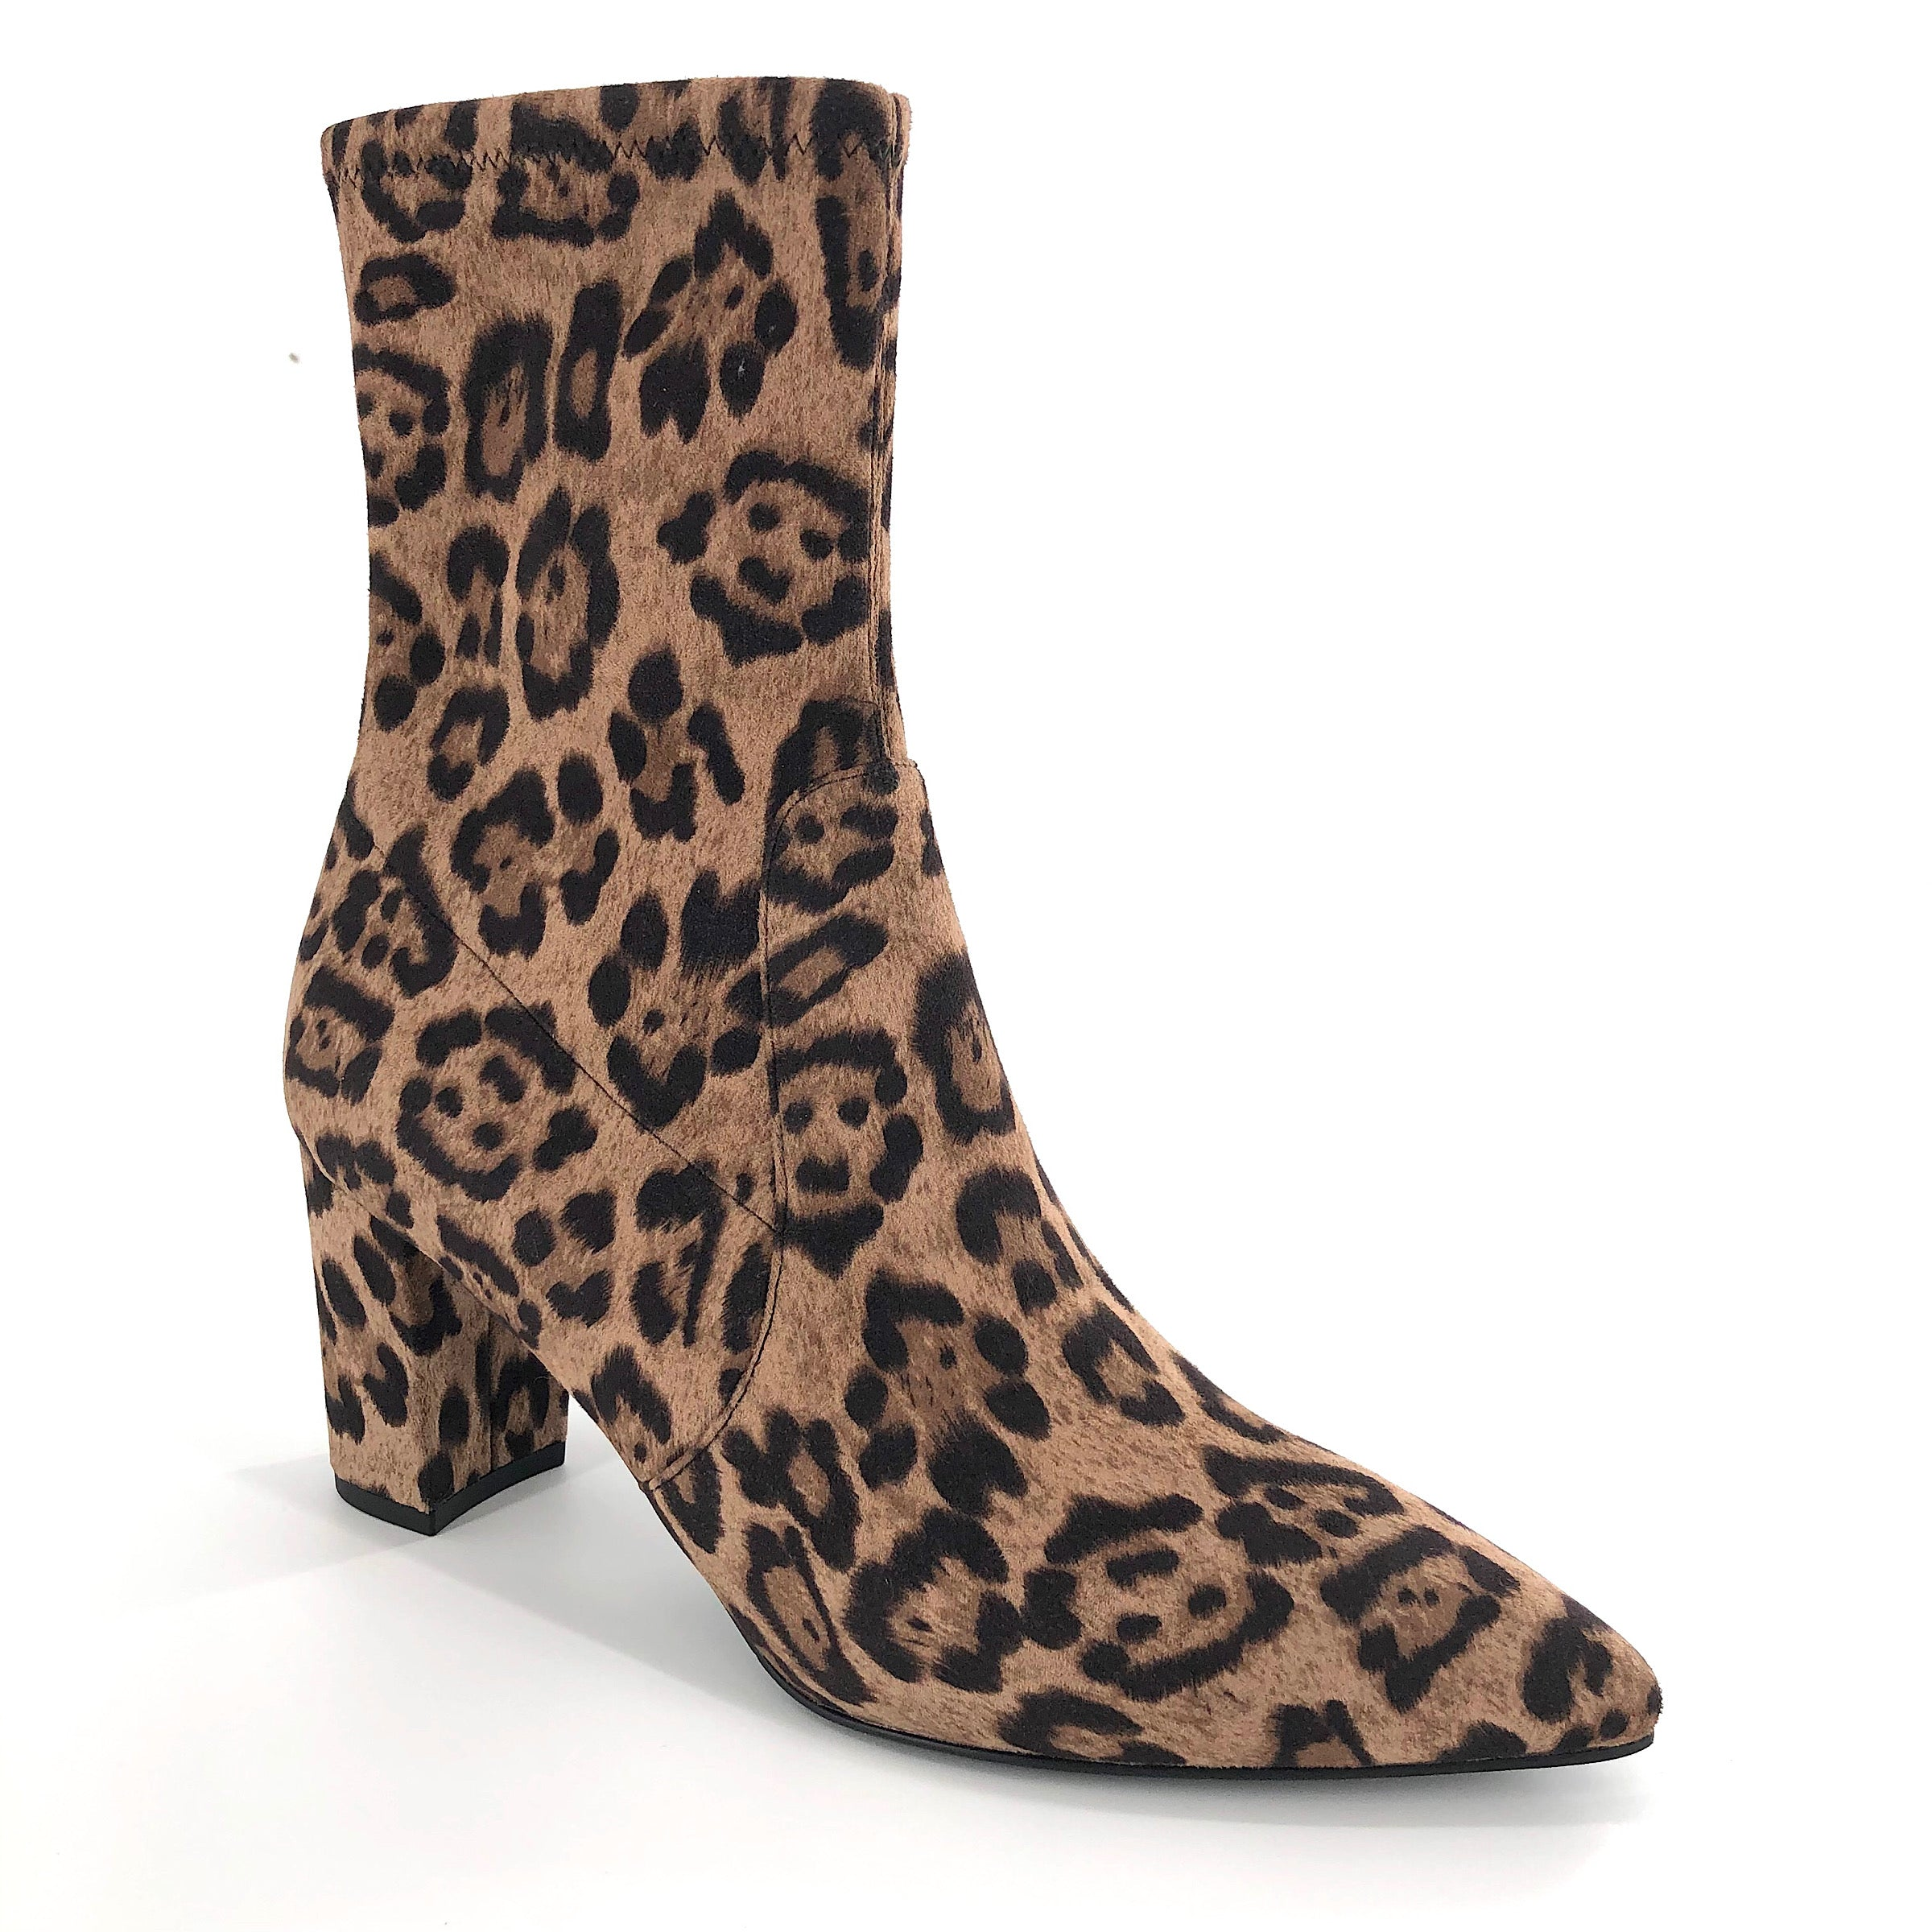 The Dress Bootie in Leopard